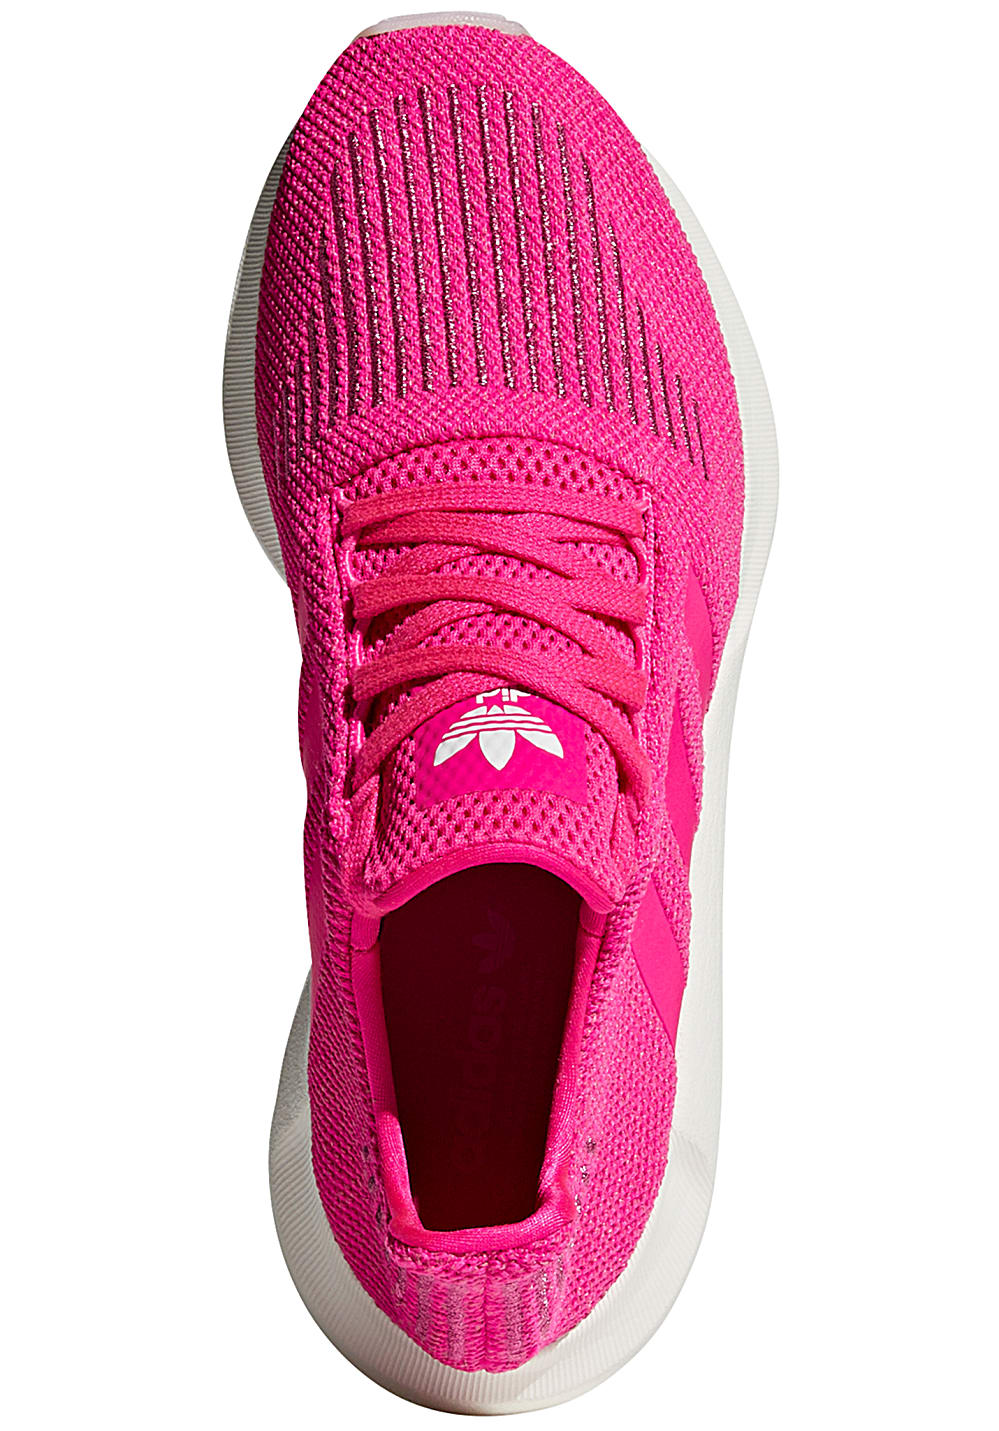 10b2e50b487 Next. This product is currently out of stock. ADIDAS ORIGINALS. Swift Run -  Sneakers for Women